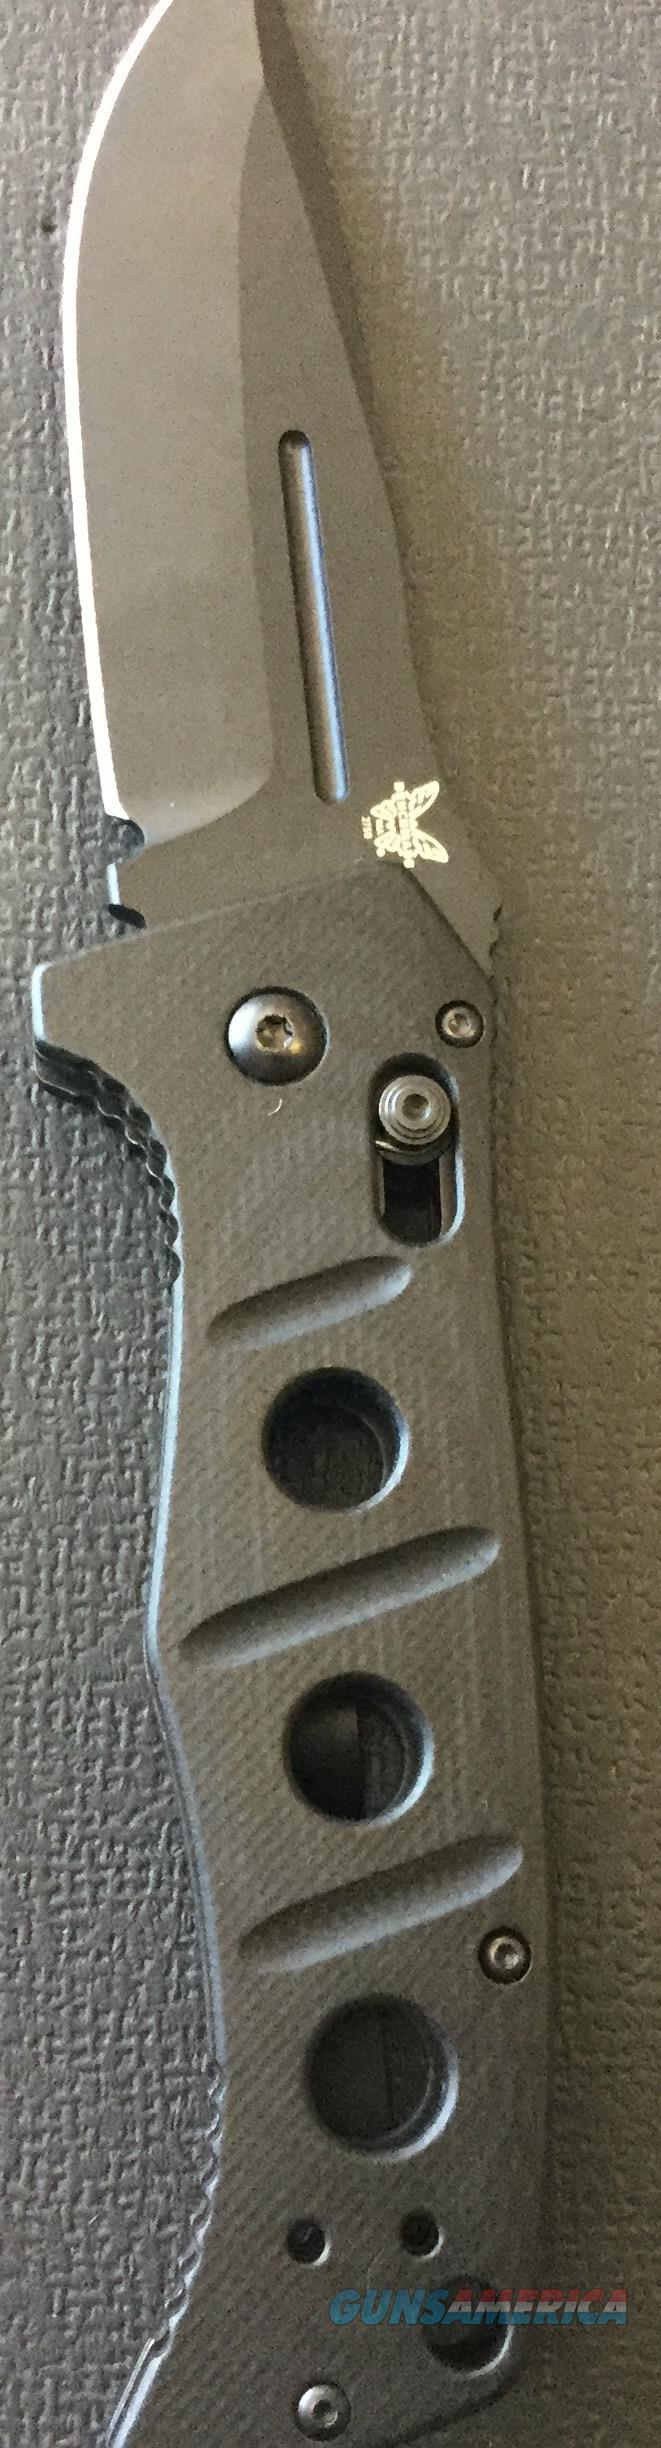 Benchmade 2750BK Adamas NIB NO CC FEES  Non-Guns > Knives/Swords > Knives > Folding Blade > Hand Made